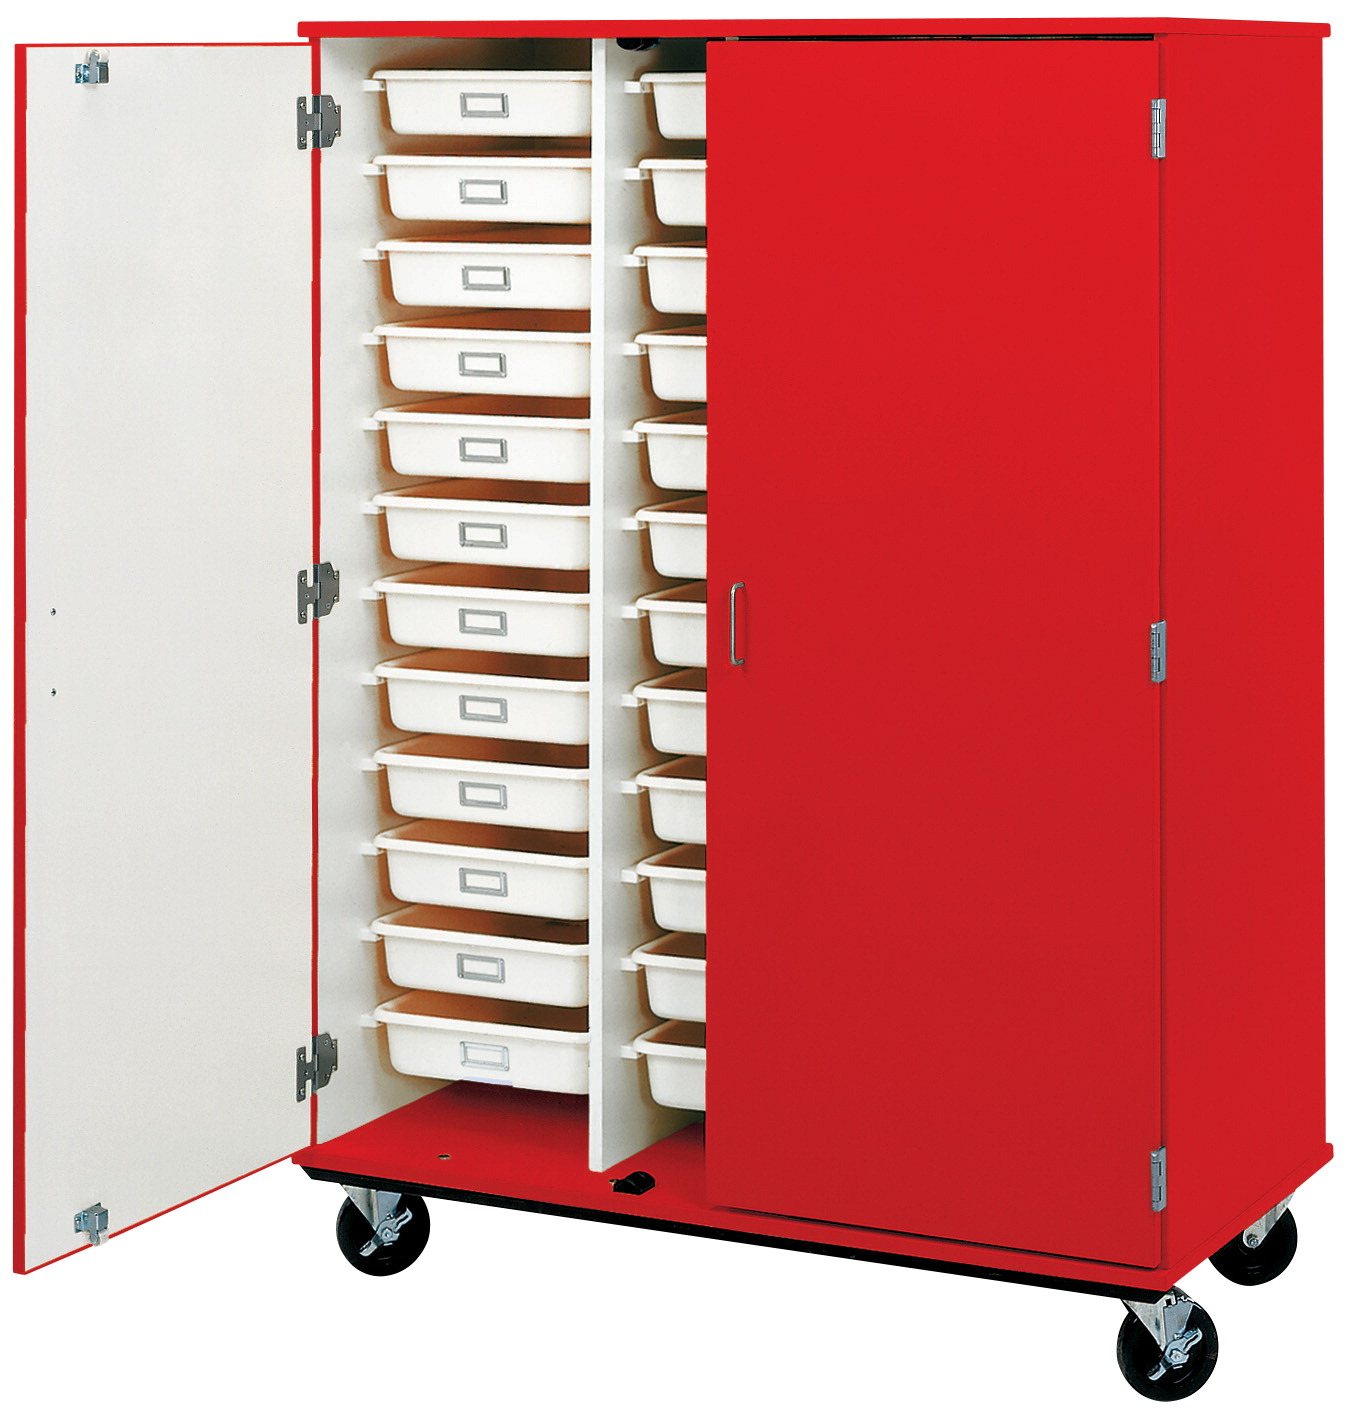 Stevens I D Systems Mobile Tray Cabinet With Doors No Lock 36 Trays 48 X 24 67 Inches Various Options